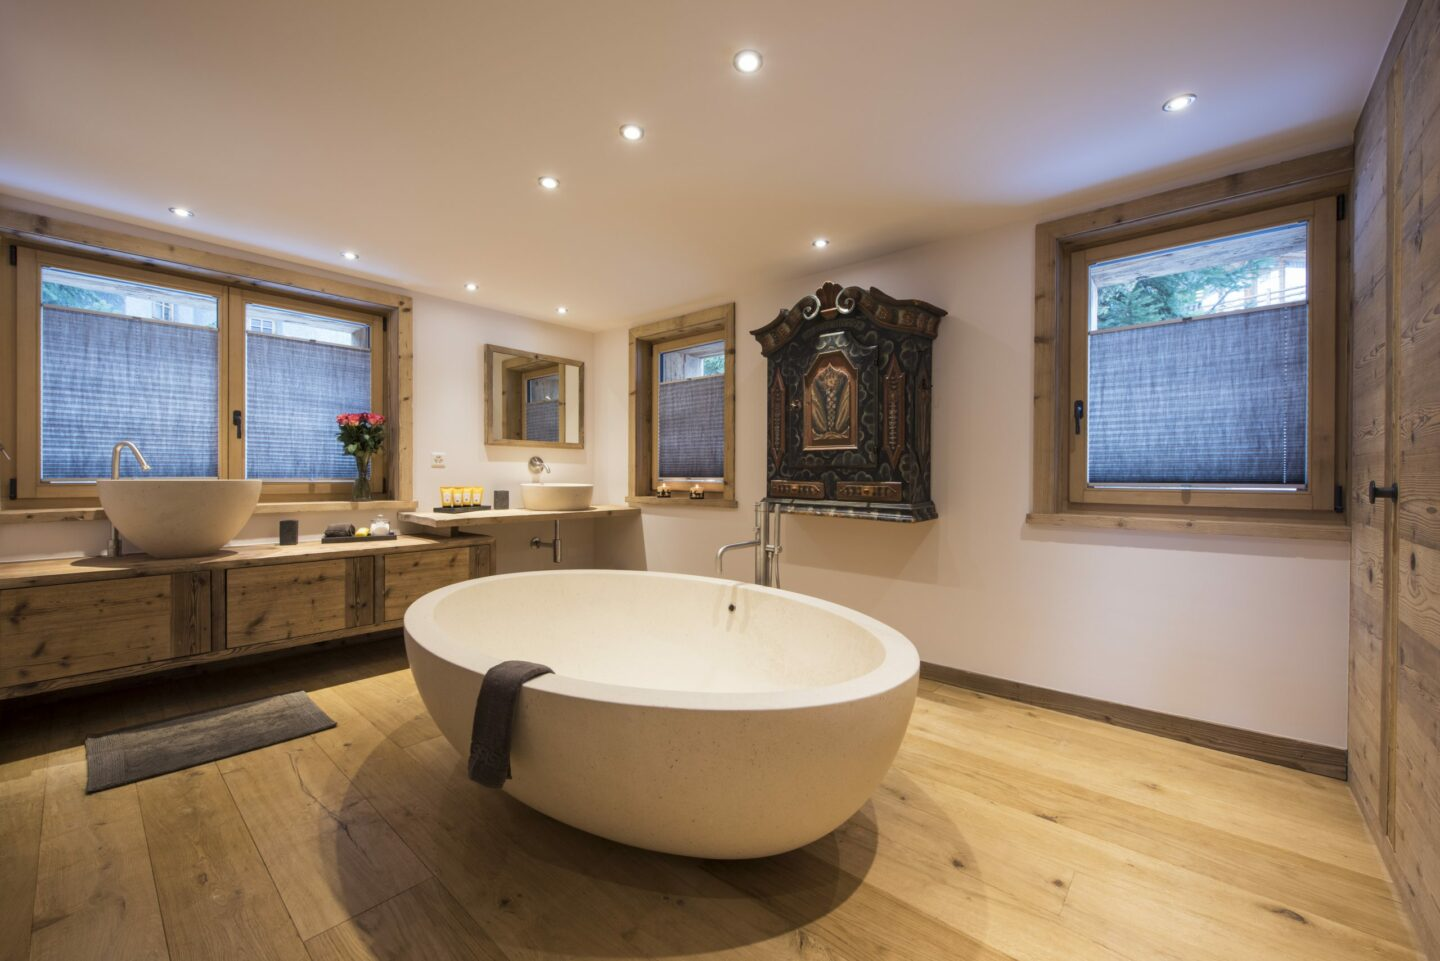 Free standing bath tub at chalet Delormes in Verbier